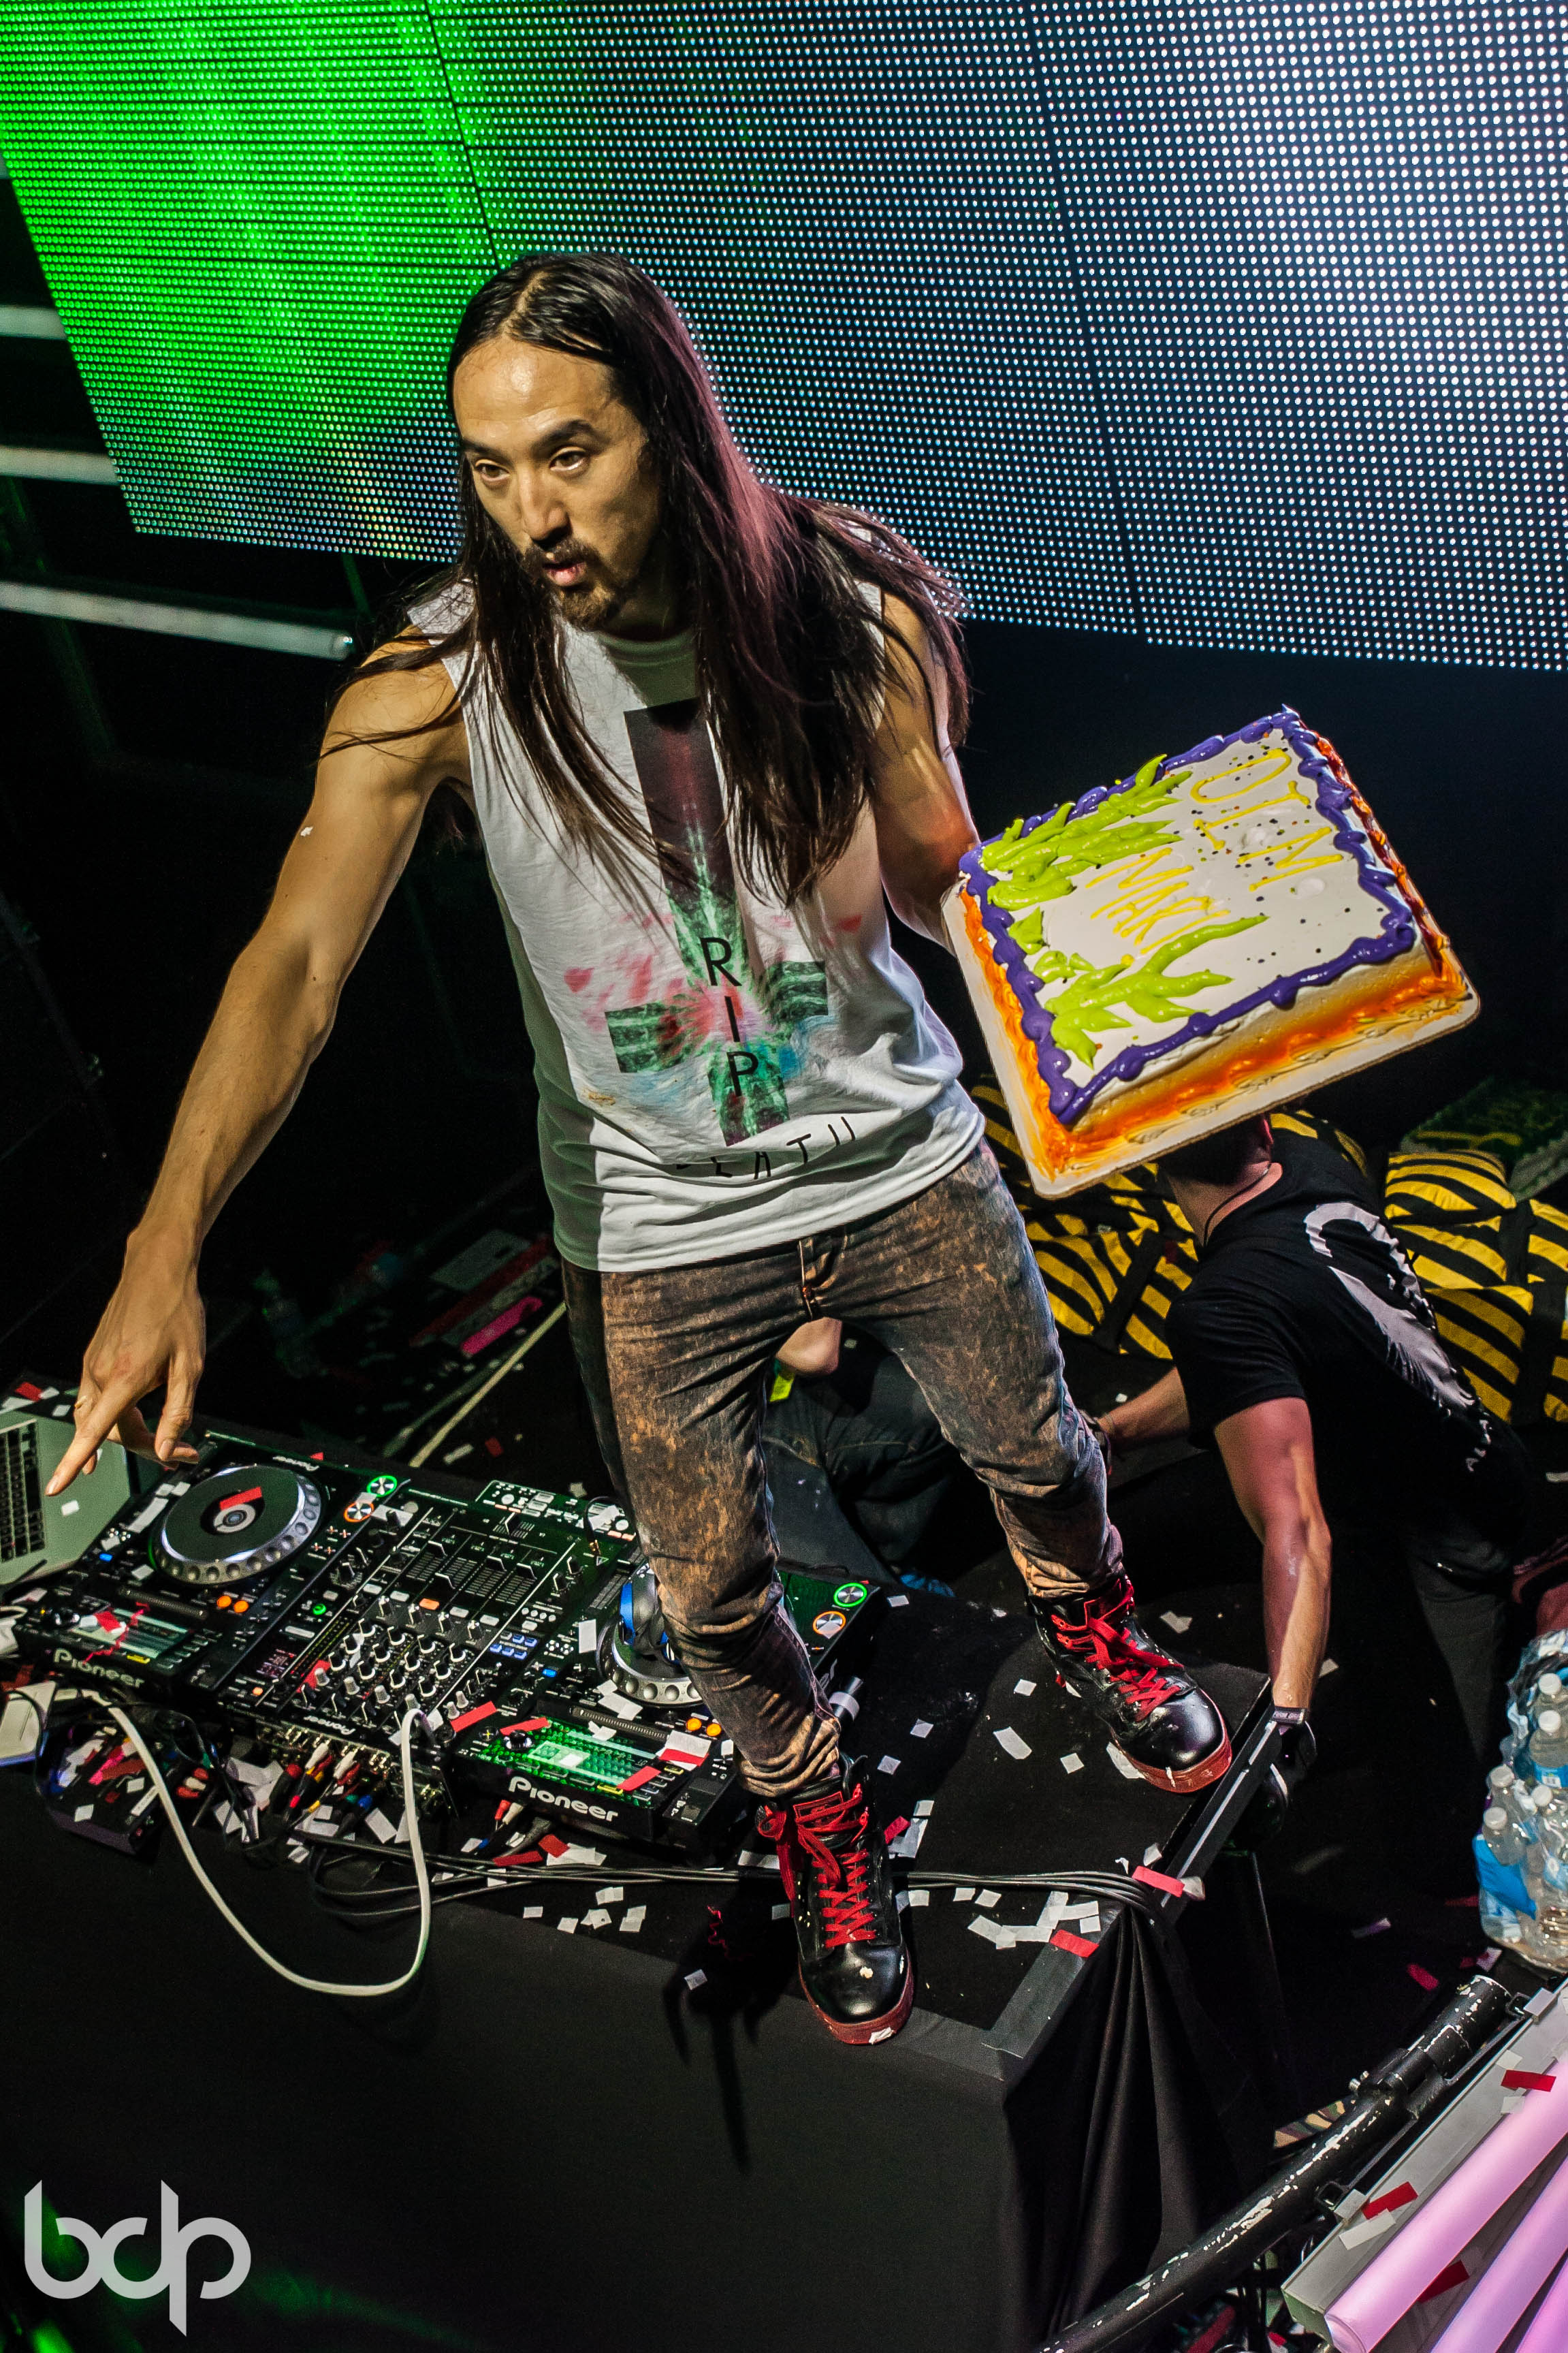 Aokify America Tour at Epic at Epic 110913 BDP-80.jpg